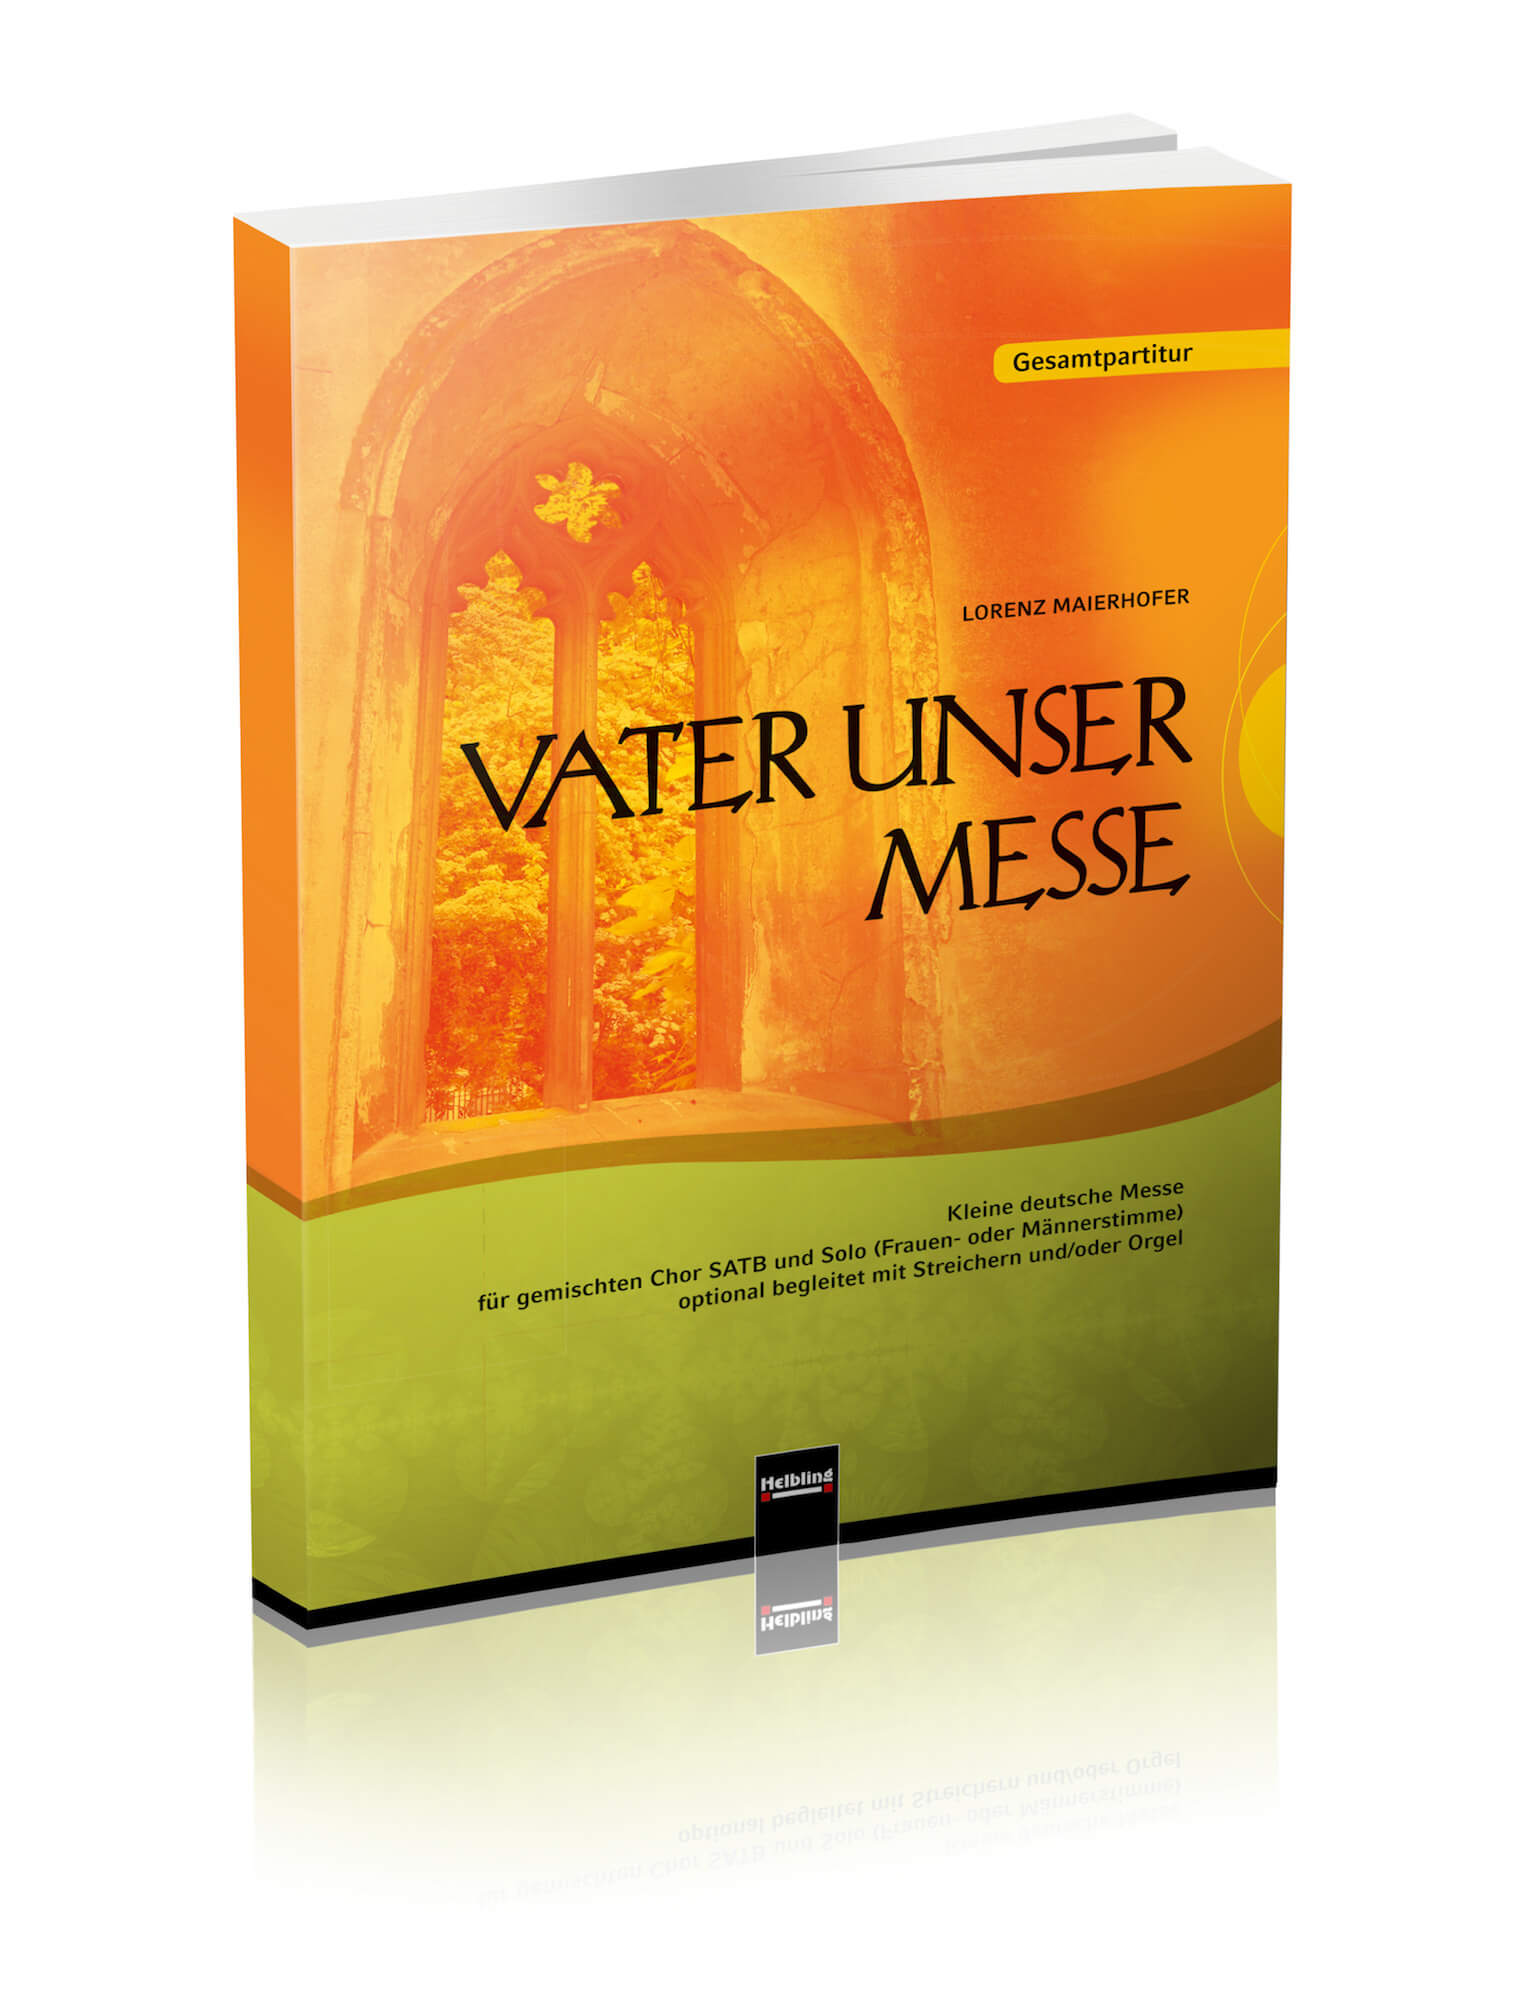 ▸ VATER UNSER-MESSE